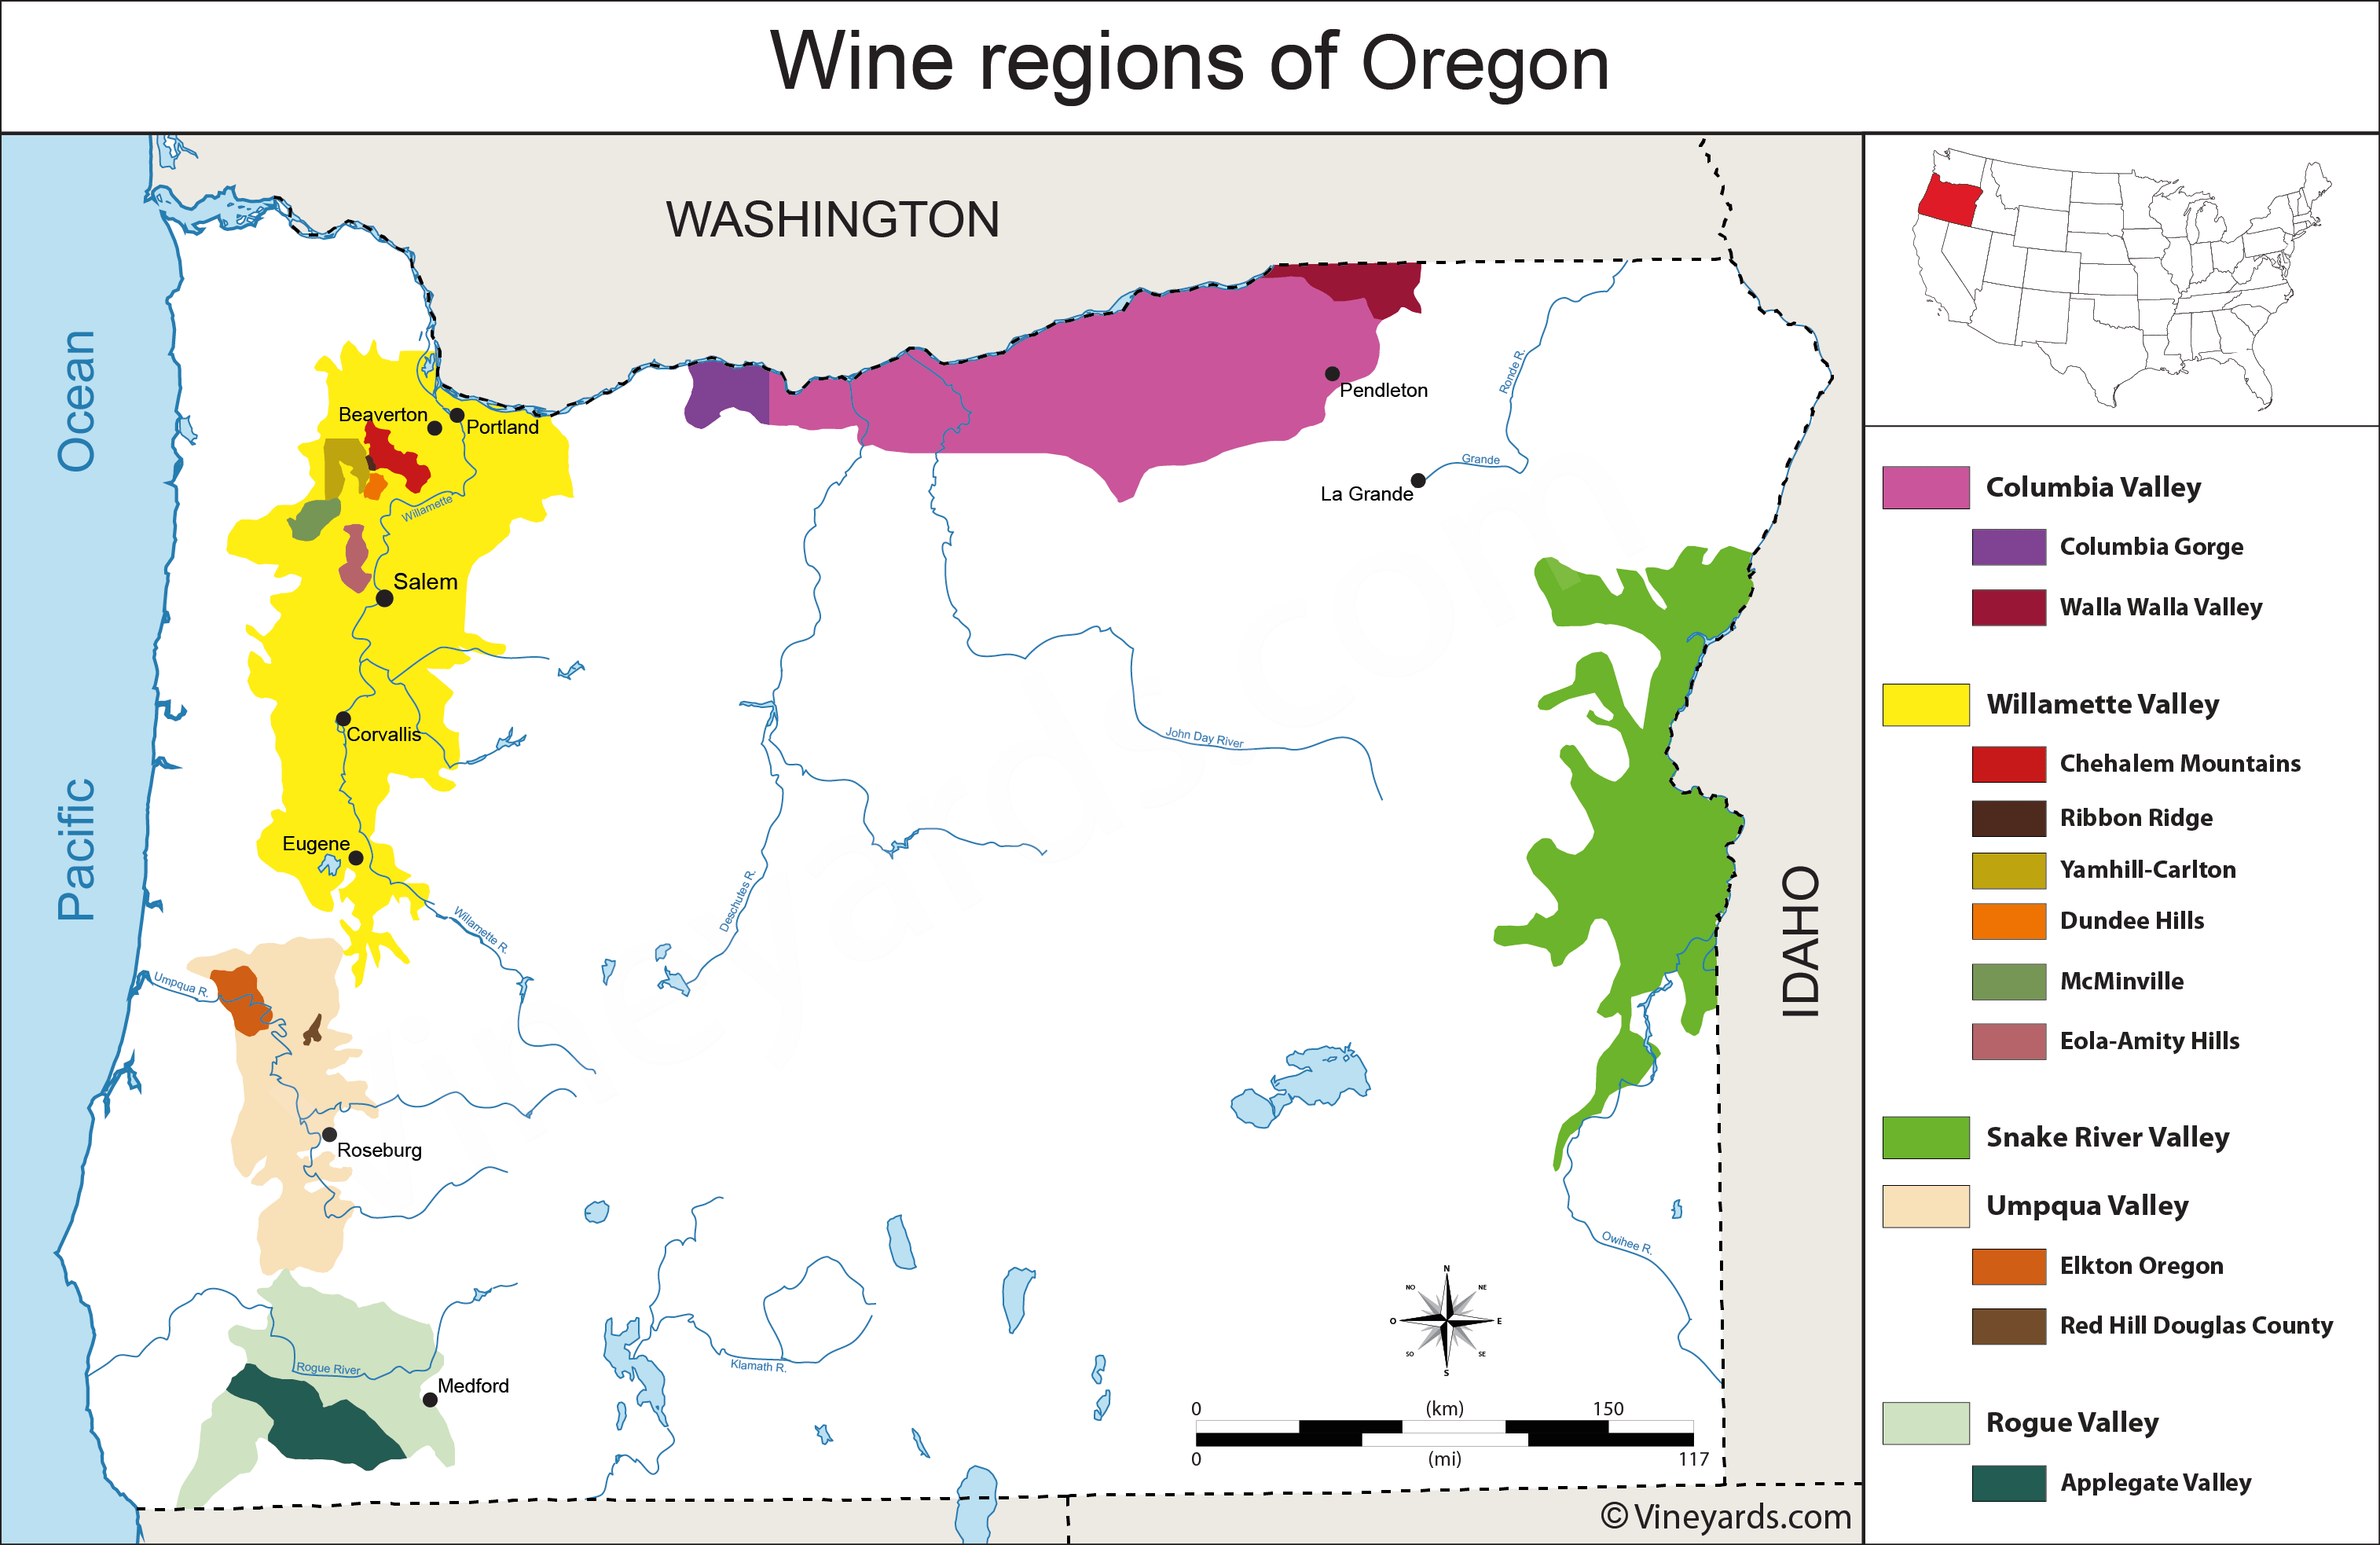 Oregon Wineries Map Oregon Map of Vineyards Wine Regions Oregon Wineries Map